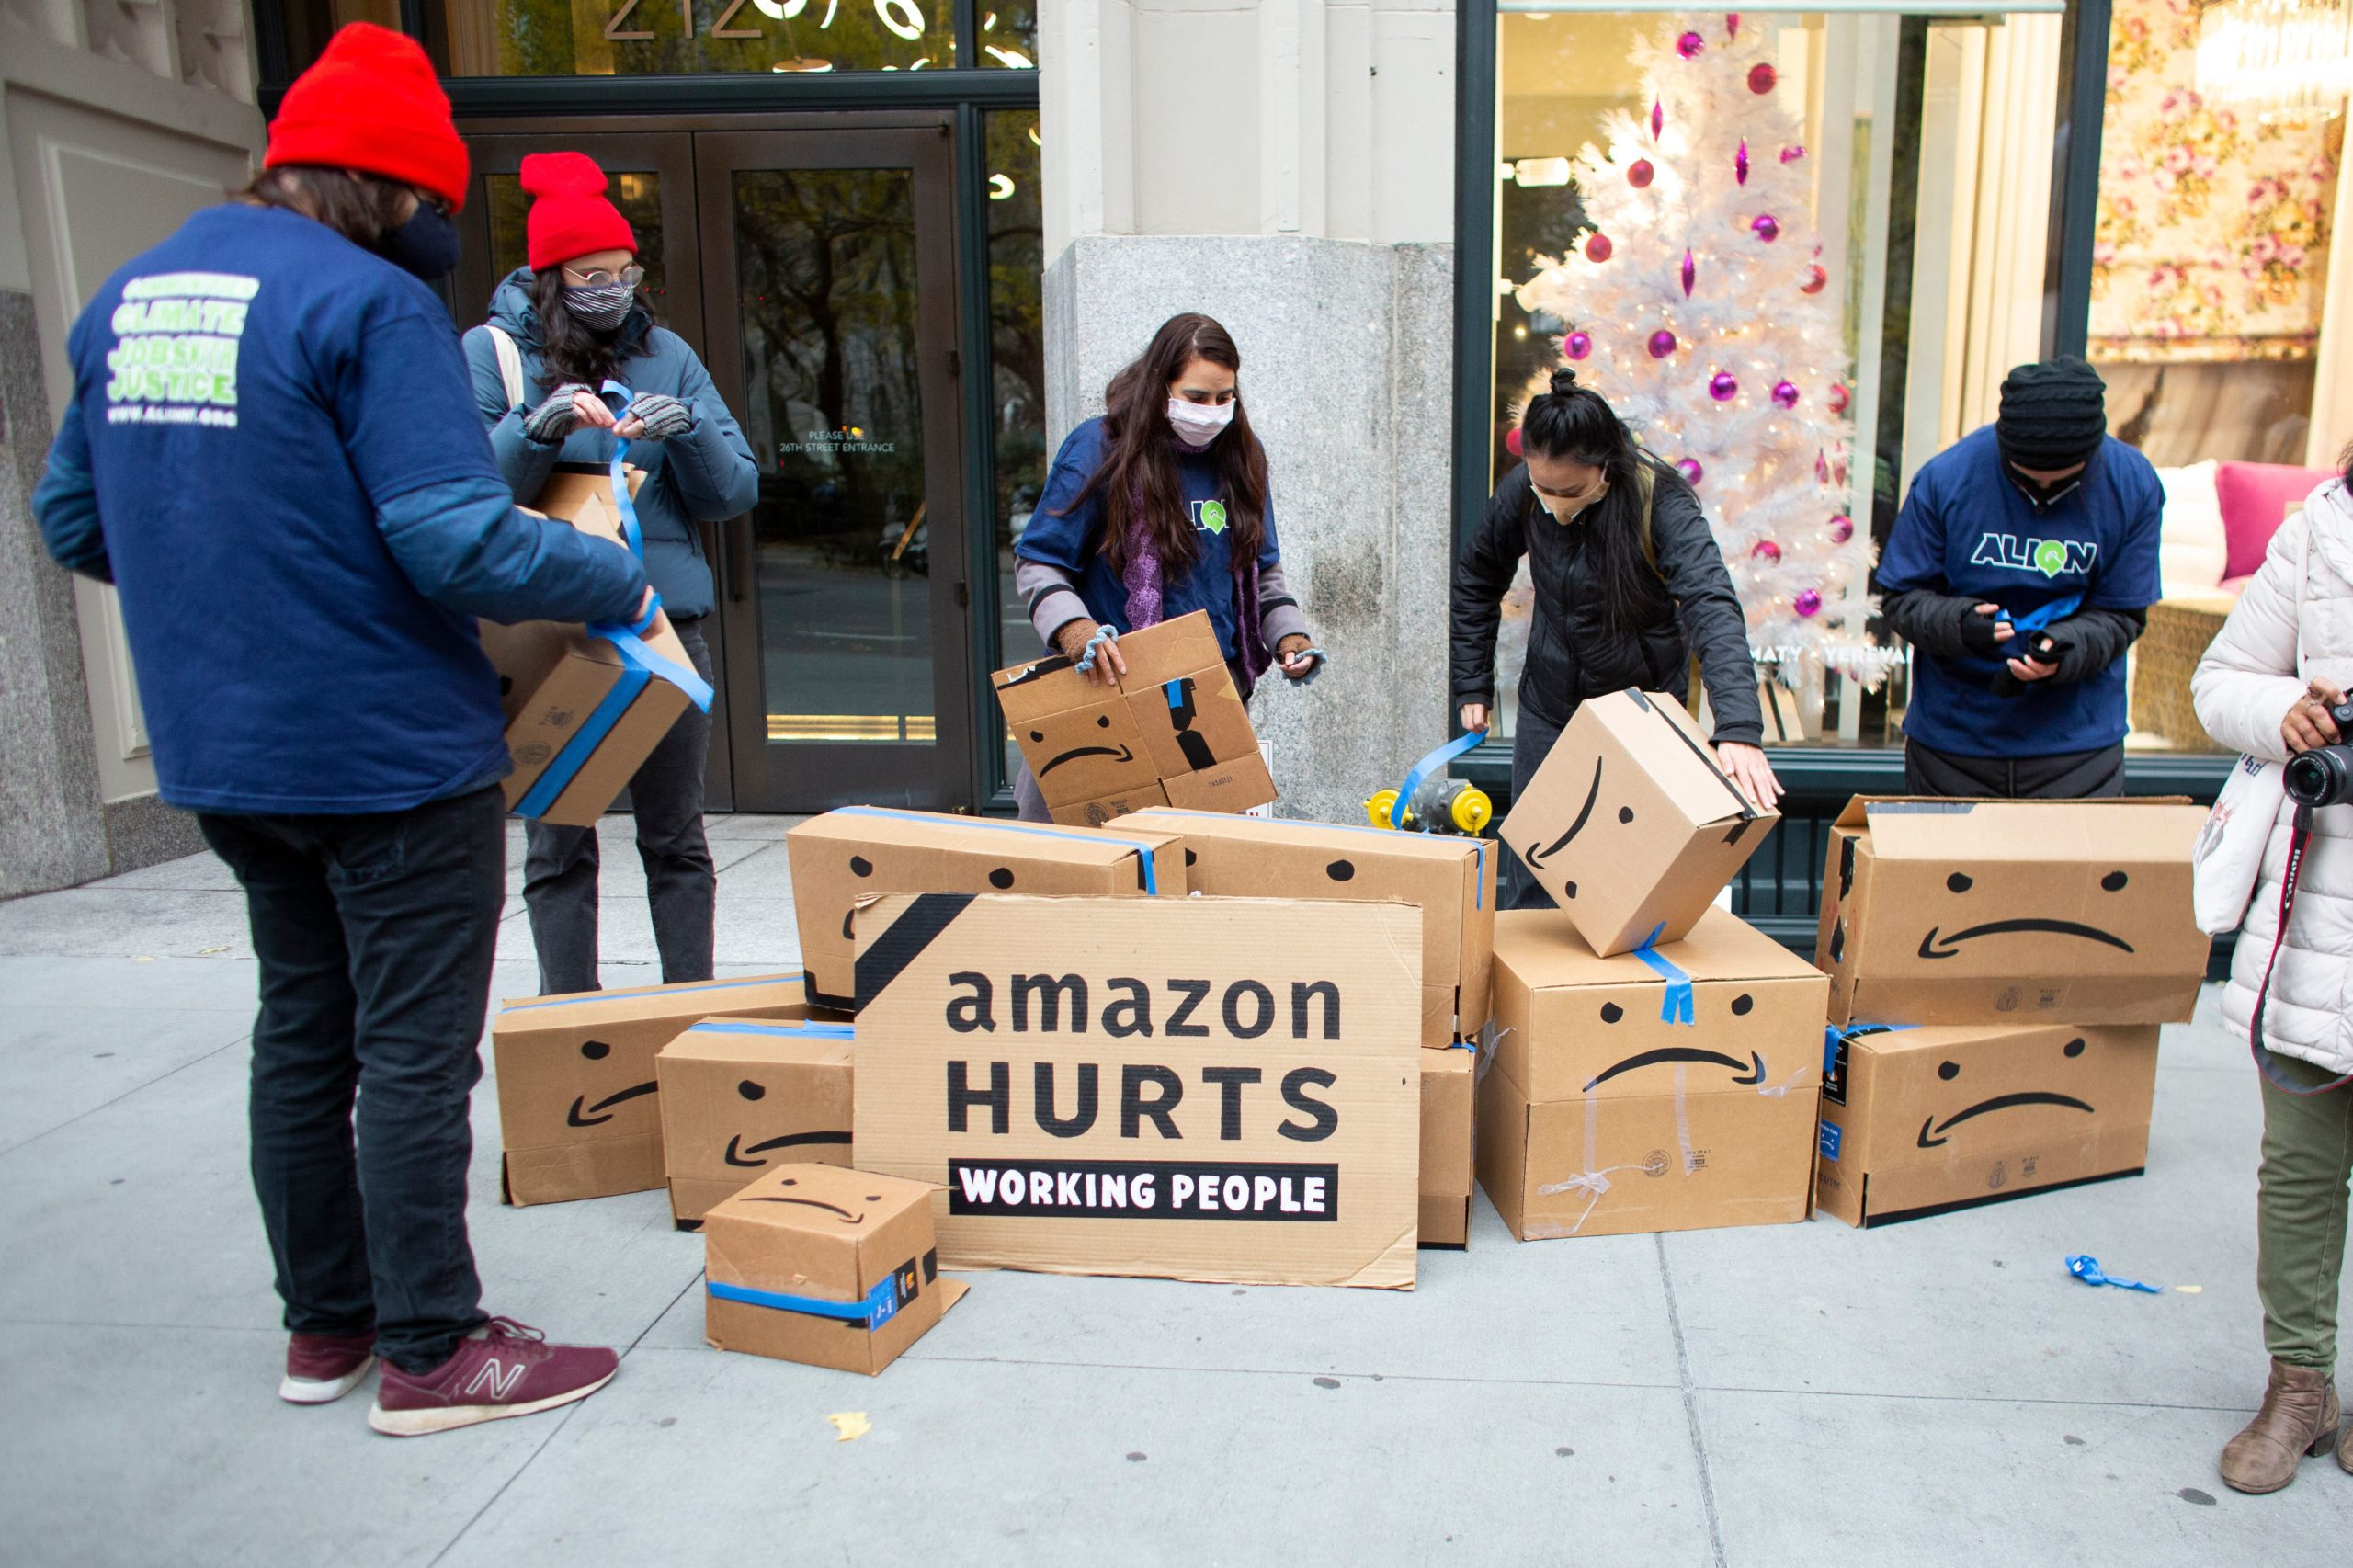 Amazon workers demonstrate during a protest organized by New York Communities for Change in front of the Jeff Bezos' Manhattan residence in New York on Dec. 2. (Kena Betancur/AFP via Getty Images)